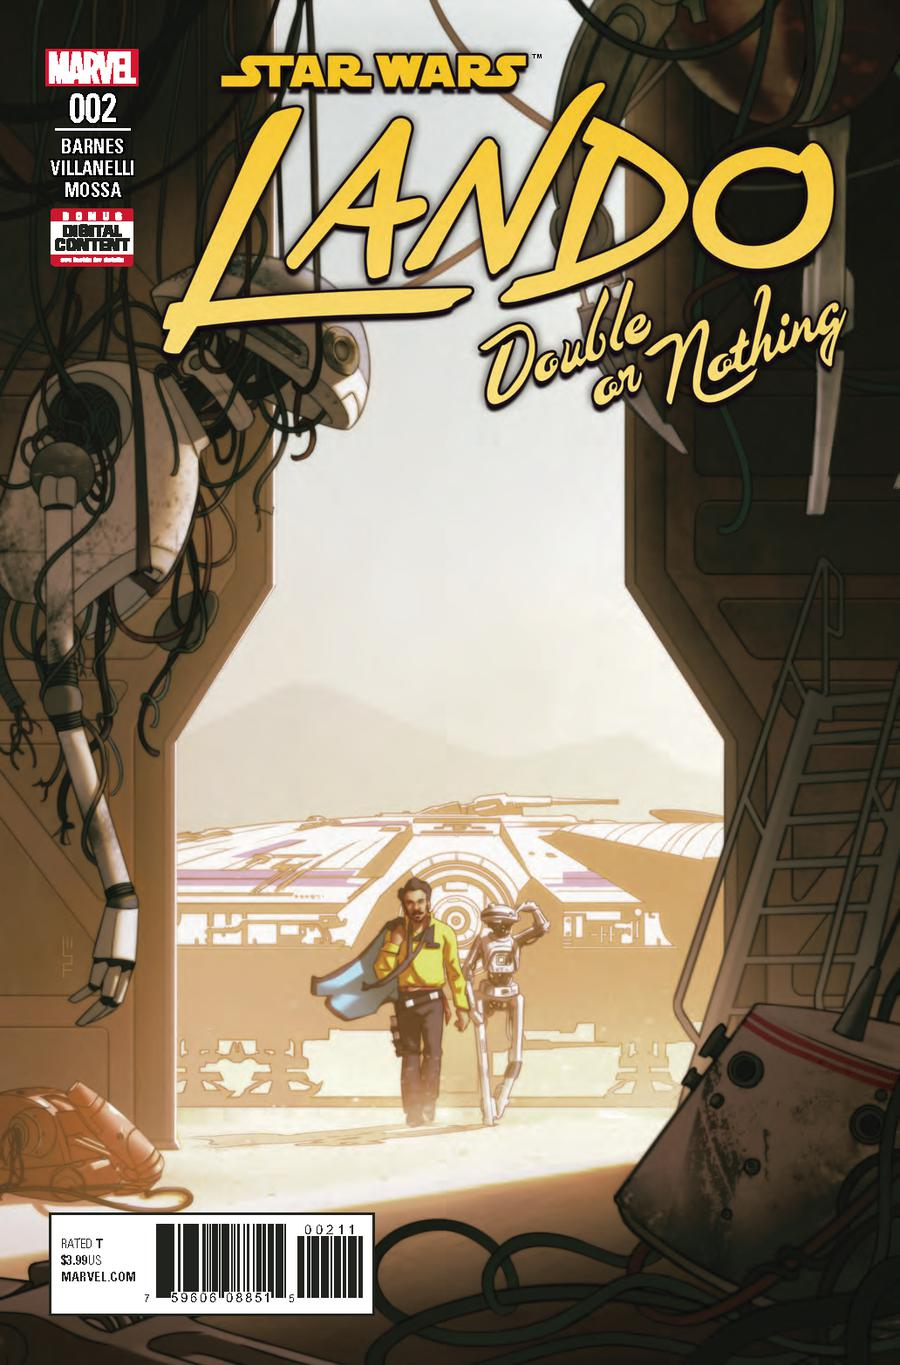 Star Wars Lando Double Or Nothing #2 Cover A Regular W Scott Forbes Cover